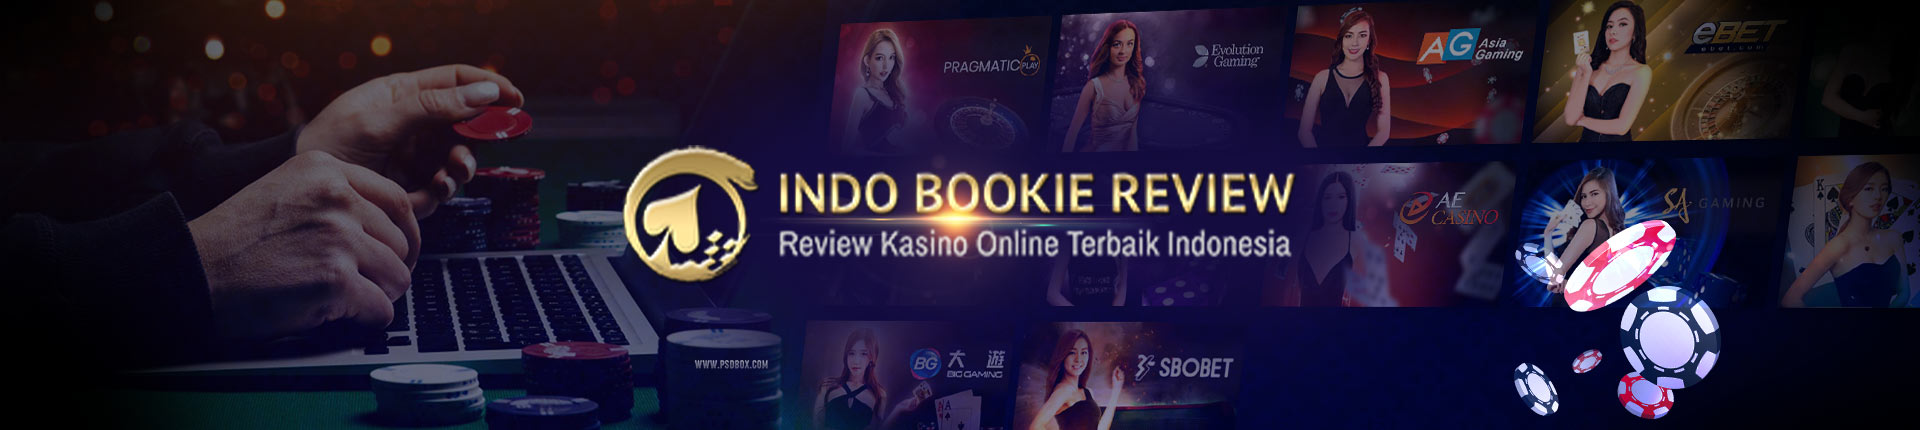 indo bookie review